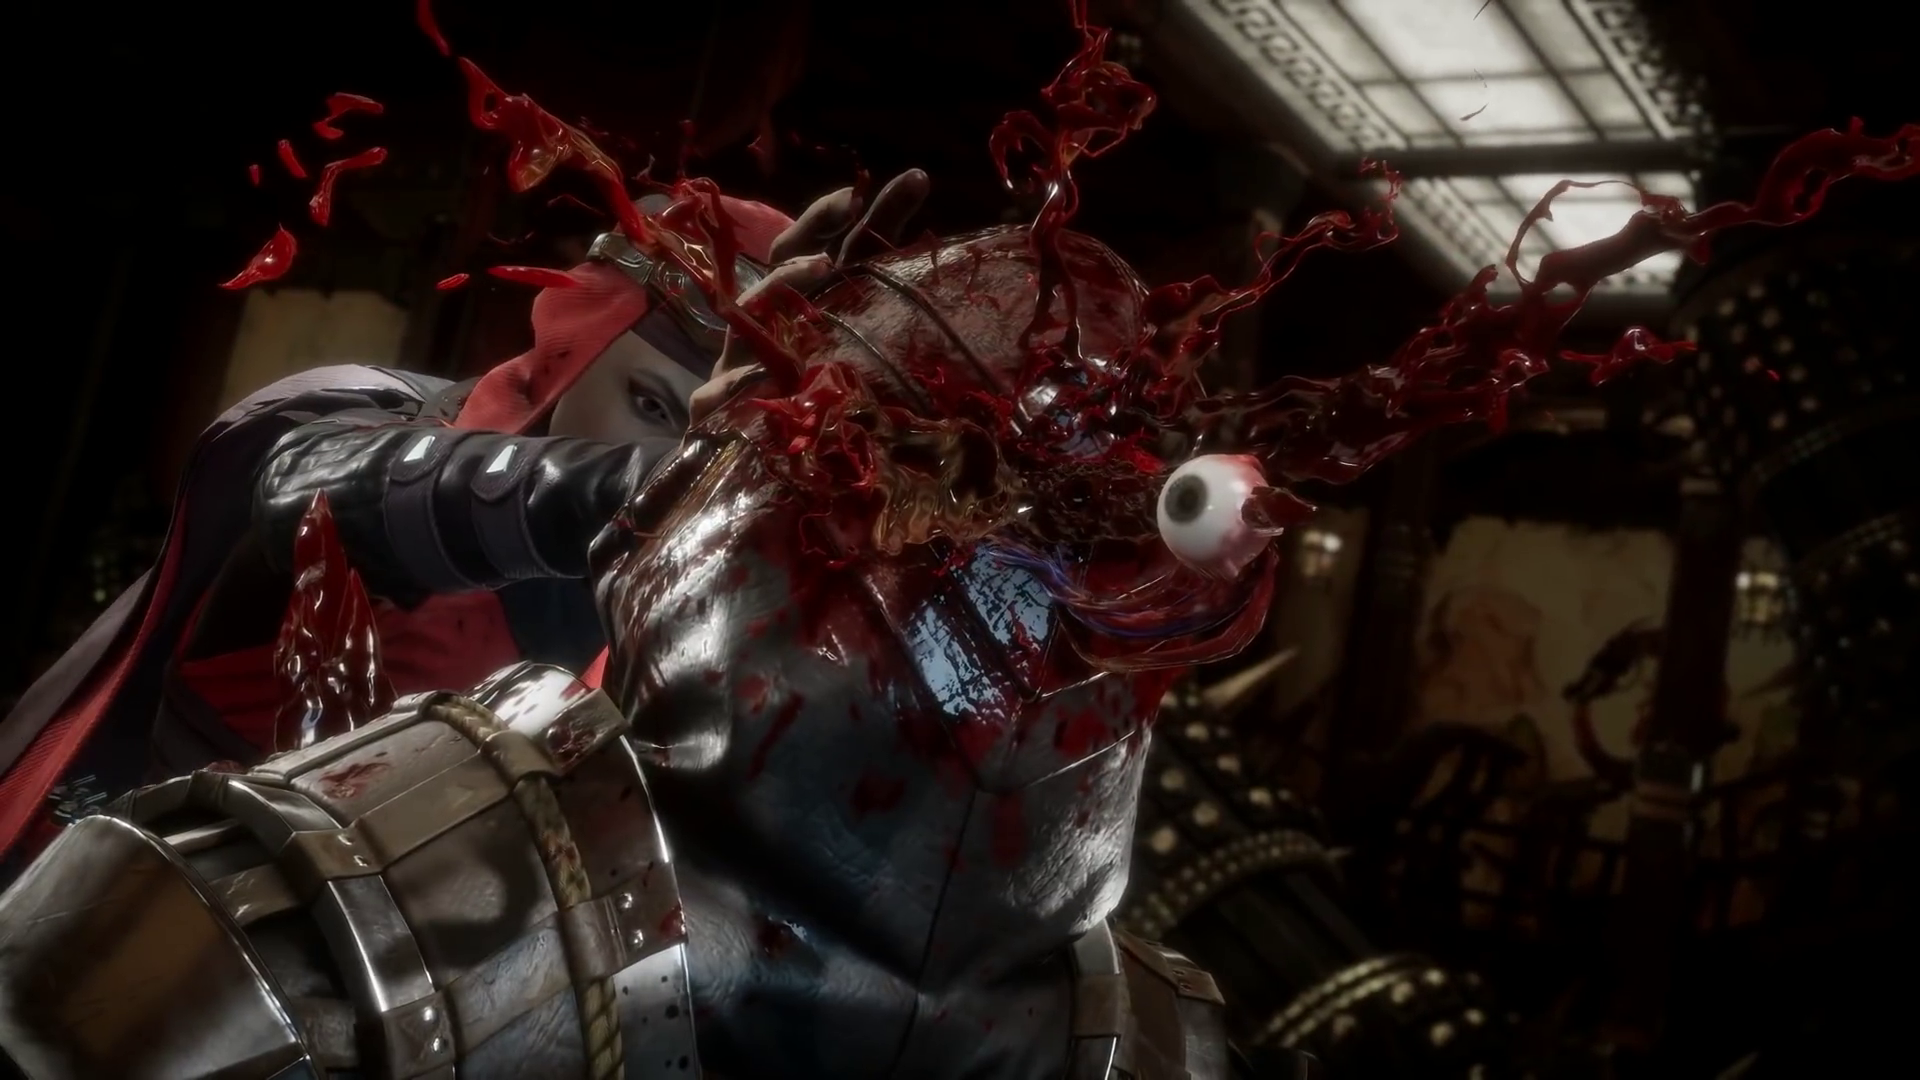 Mortal Kombat 11 S Fatality Design Process Started With Stick